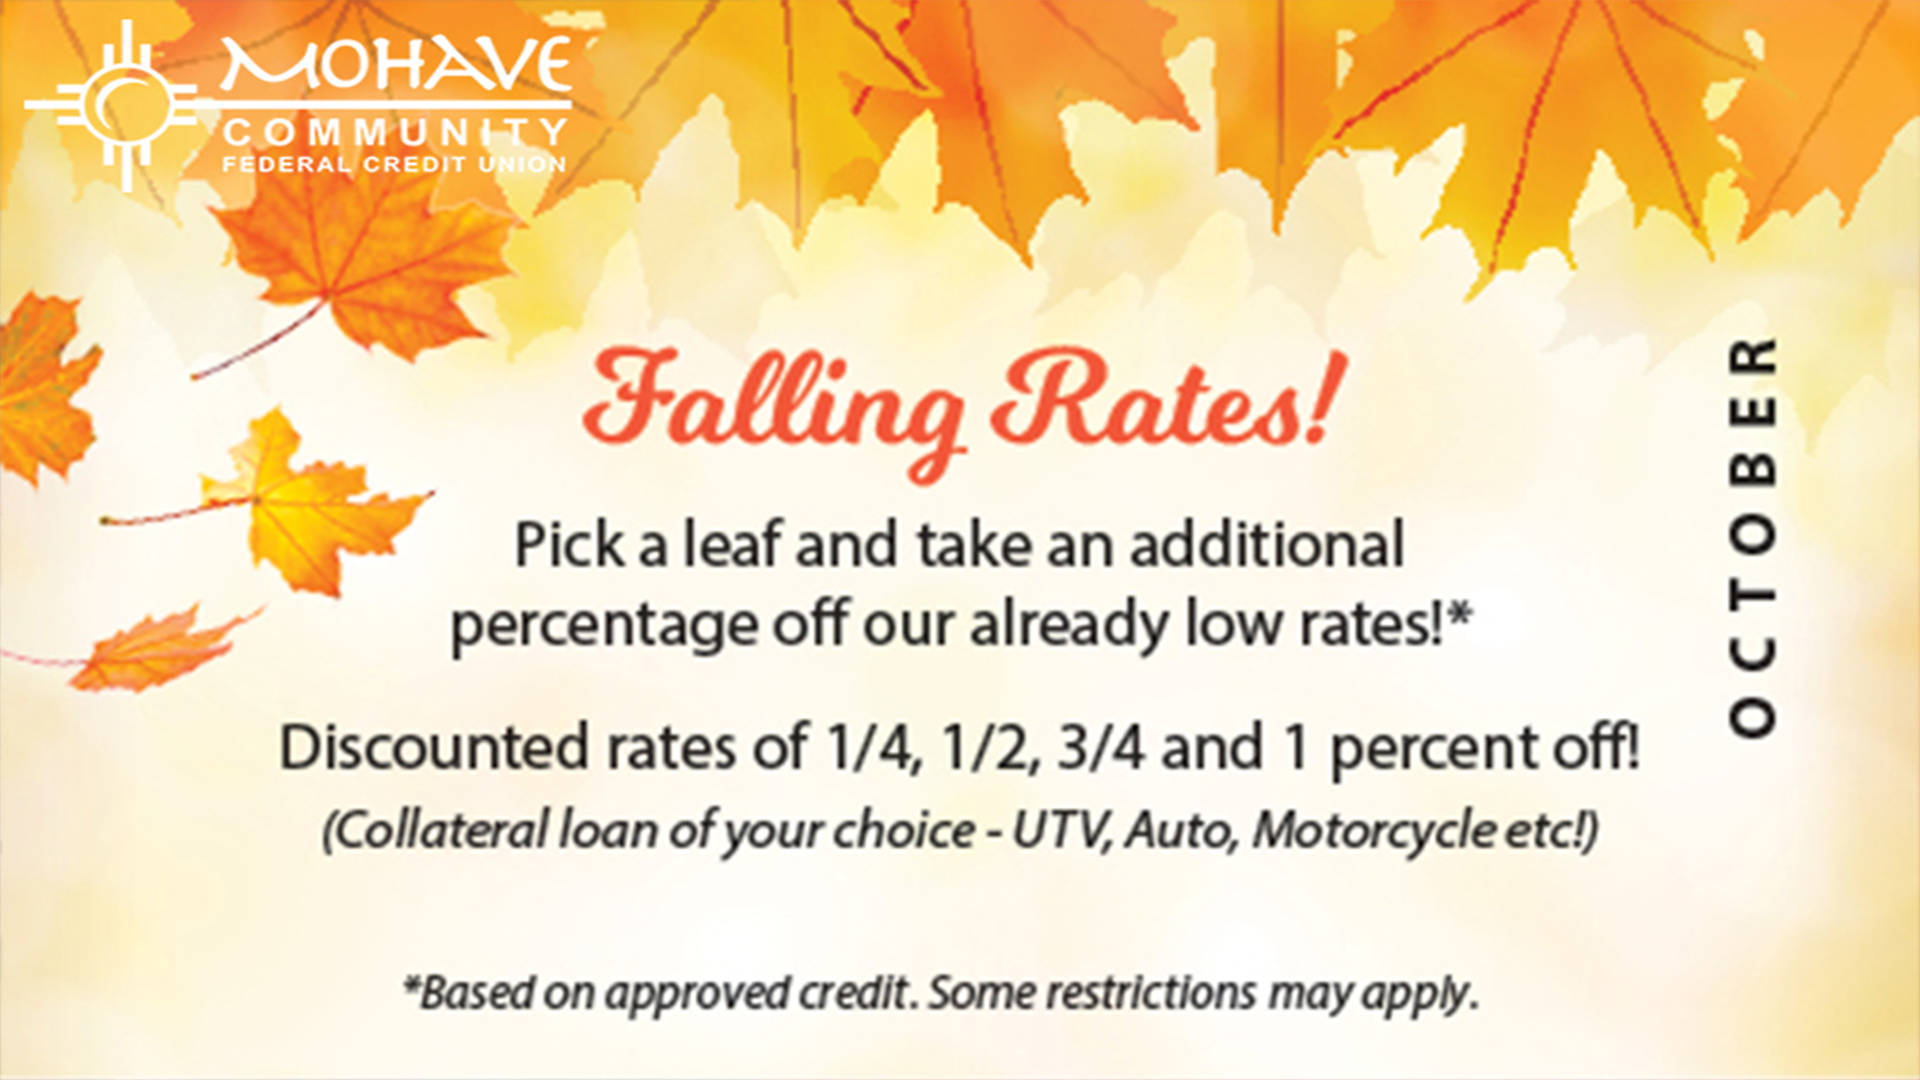 Loan Special for the month of October is our Falling Rates! Pick a leaf and take an additional percentage off our already low rates! Call 928-753-8000 for more details. Rates on approved credit. Some restrictions may apply.  Cannot be used in conjunction with any other loan special/promotion.